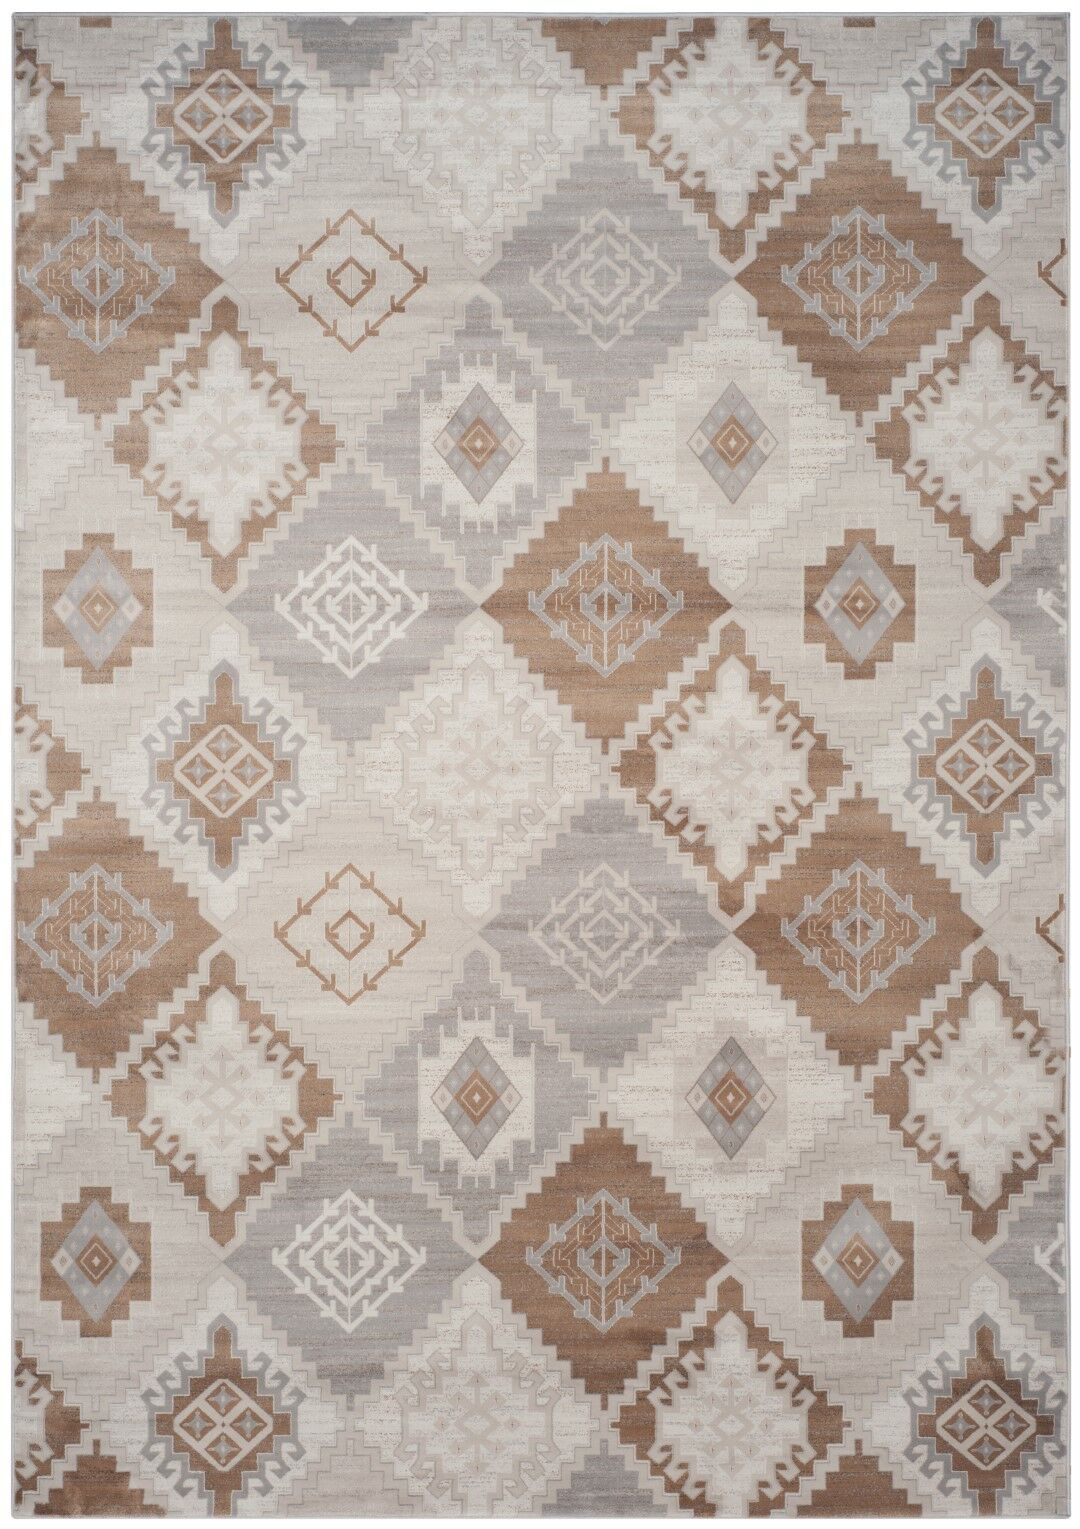 Abrahamic Cream / Camel Area Rug Rug Size: Rectangle 4' x 5'7